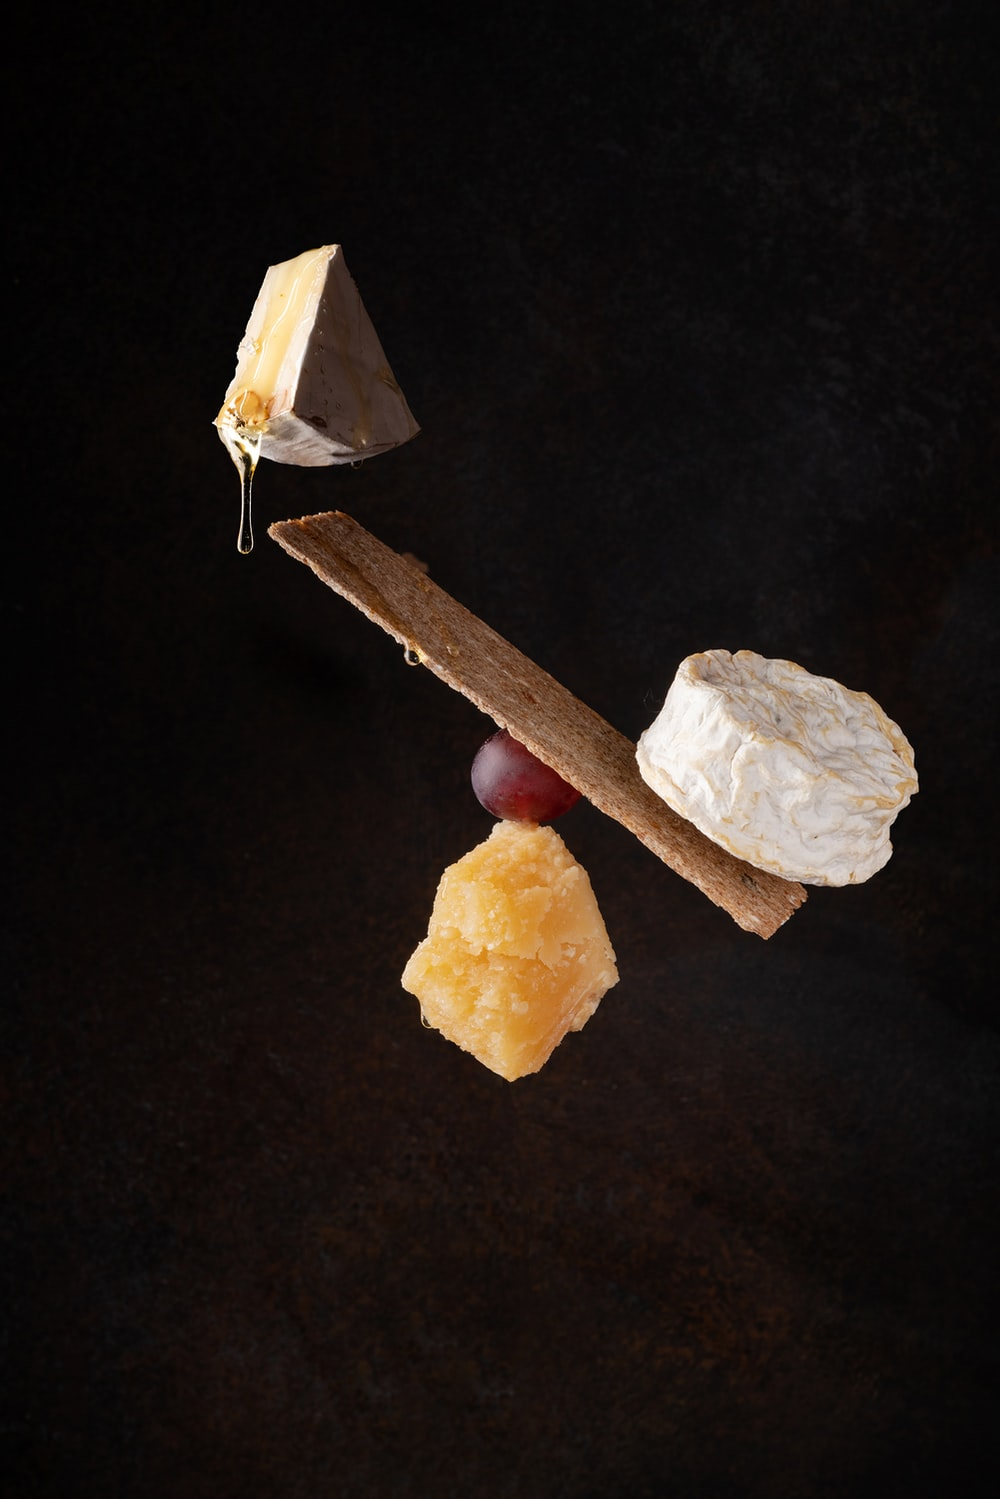 brown wooden stick beside white stone